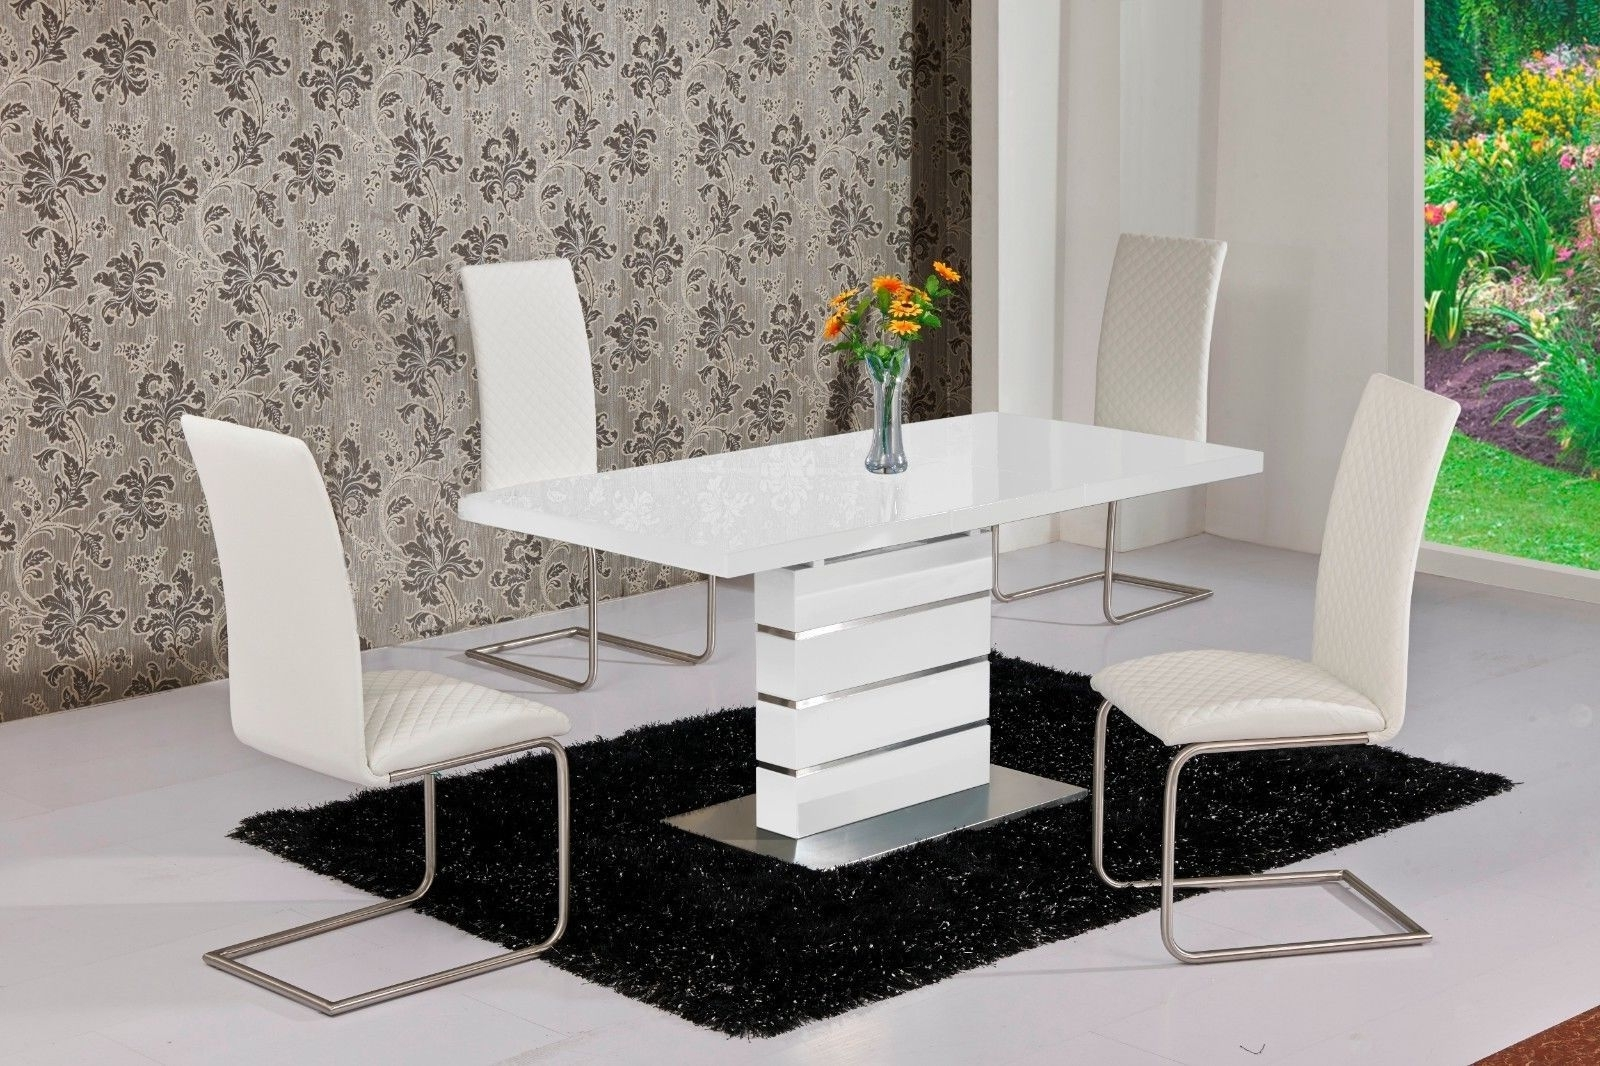 Mace High Gloss Extending 120 160 Dining Table & Chair Set – White Pertaining To Newest Extendable Dining Tables 6 Chairs (View 8 of 25)